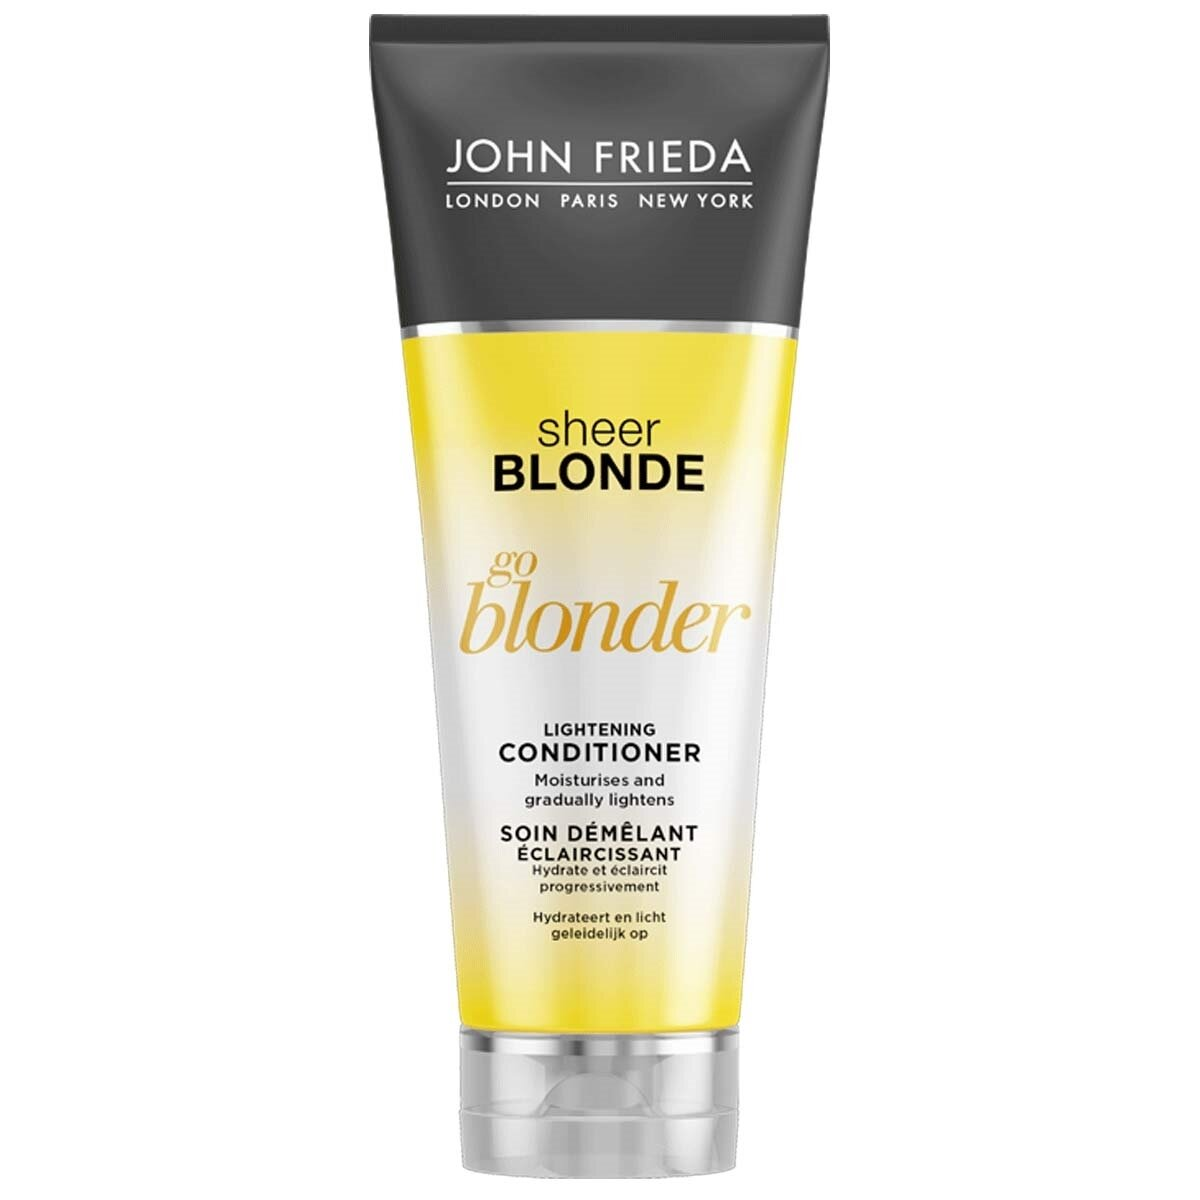 Sheer Blonde Go Blonder Saç Kremi 250 ml